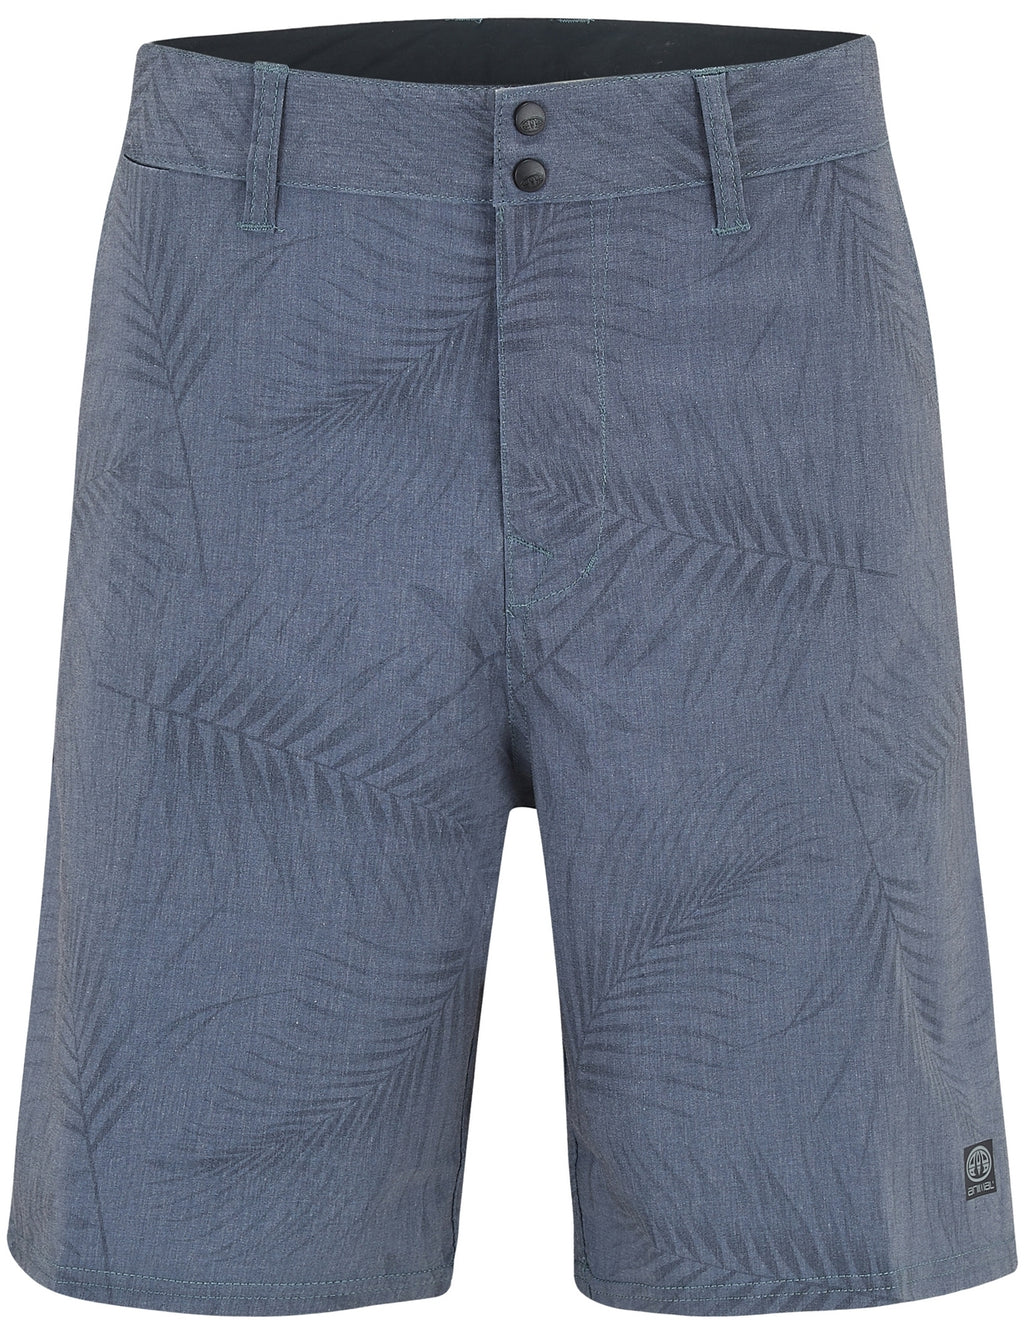 Short de baie Animal-Darwin Short Tarquin-CL8SN017 F95